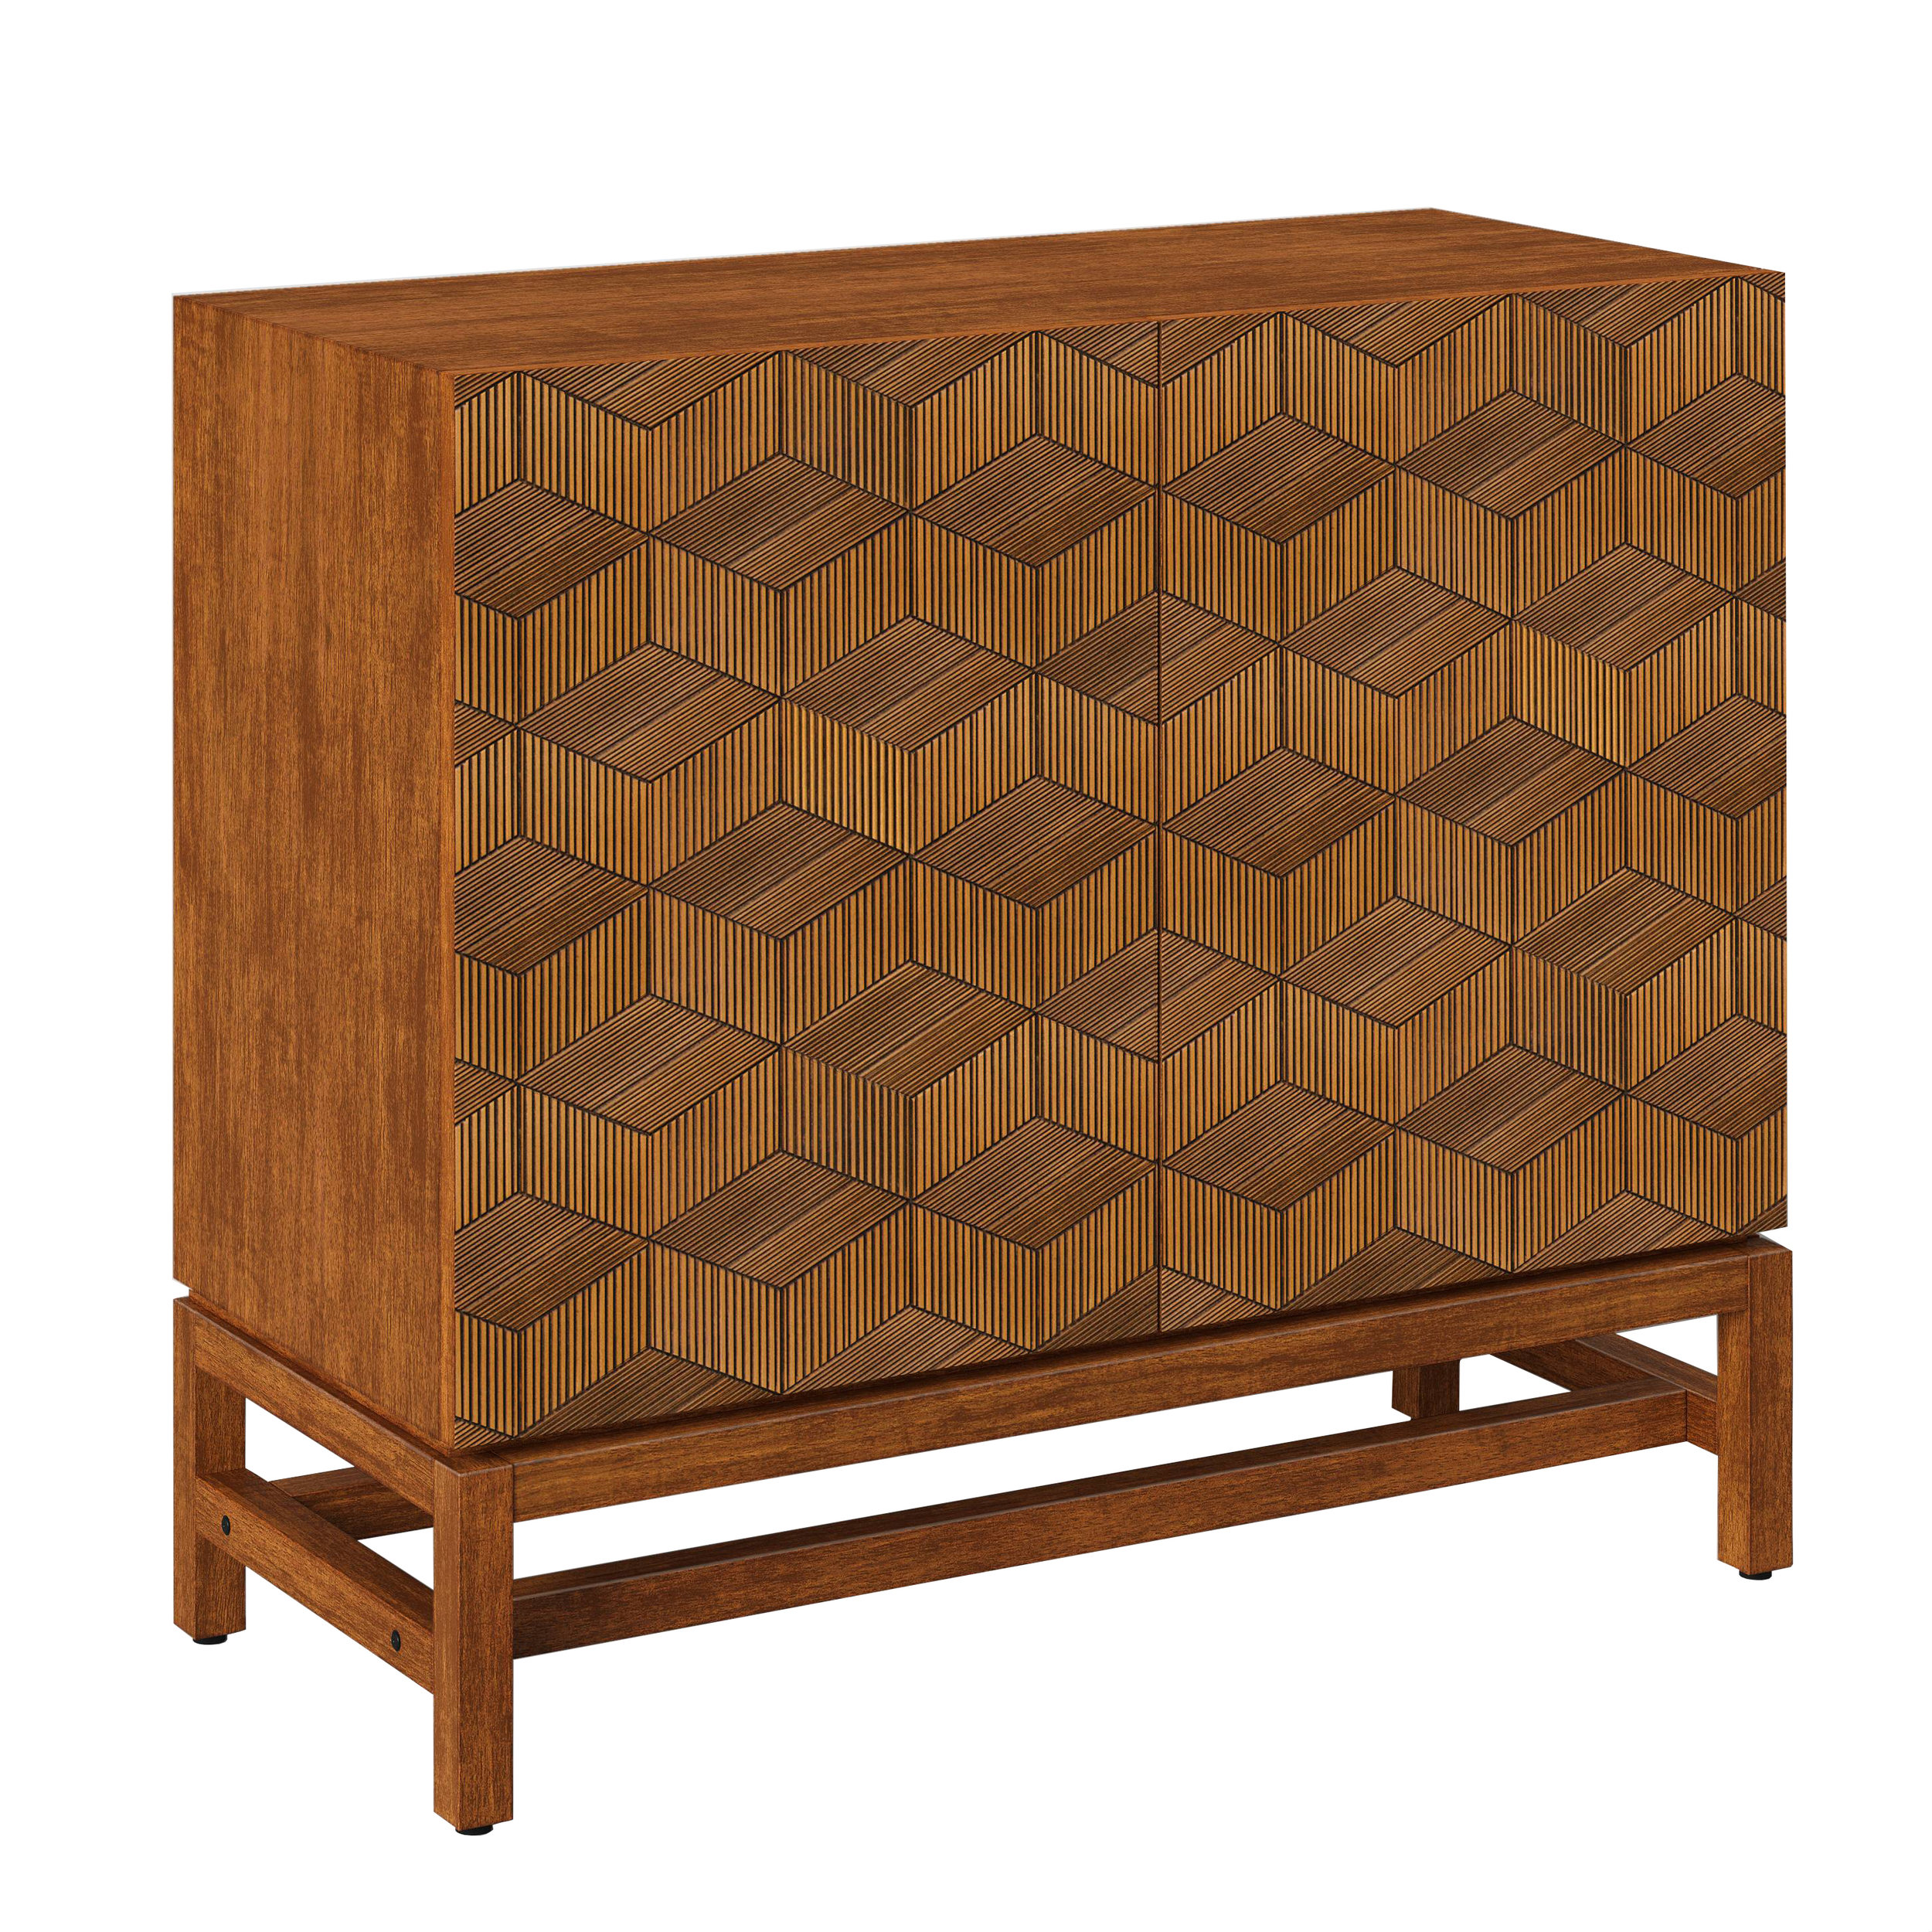 Tachuri Geometric Front 2 Door Cabinet Brown, $159.99 -